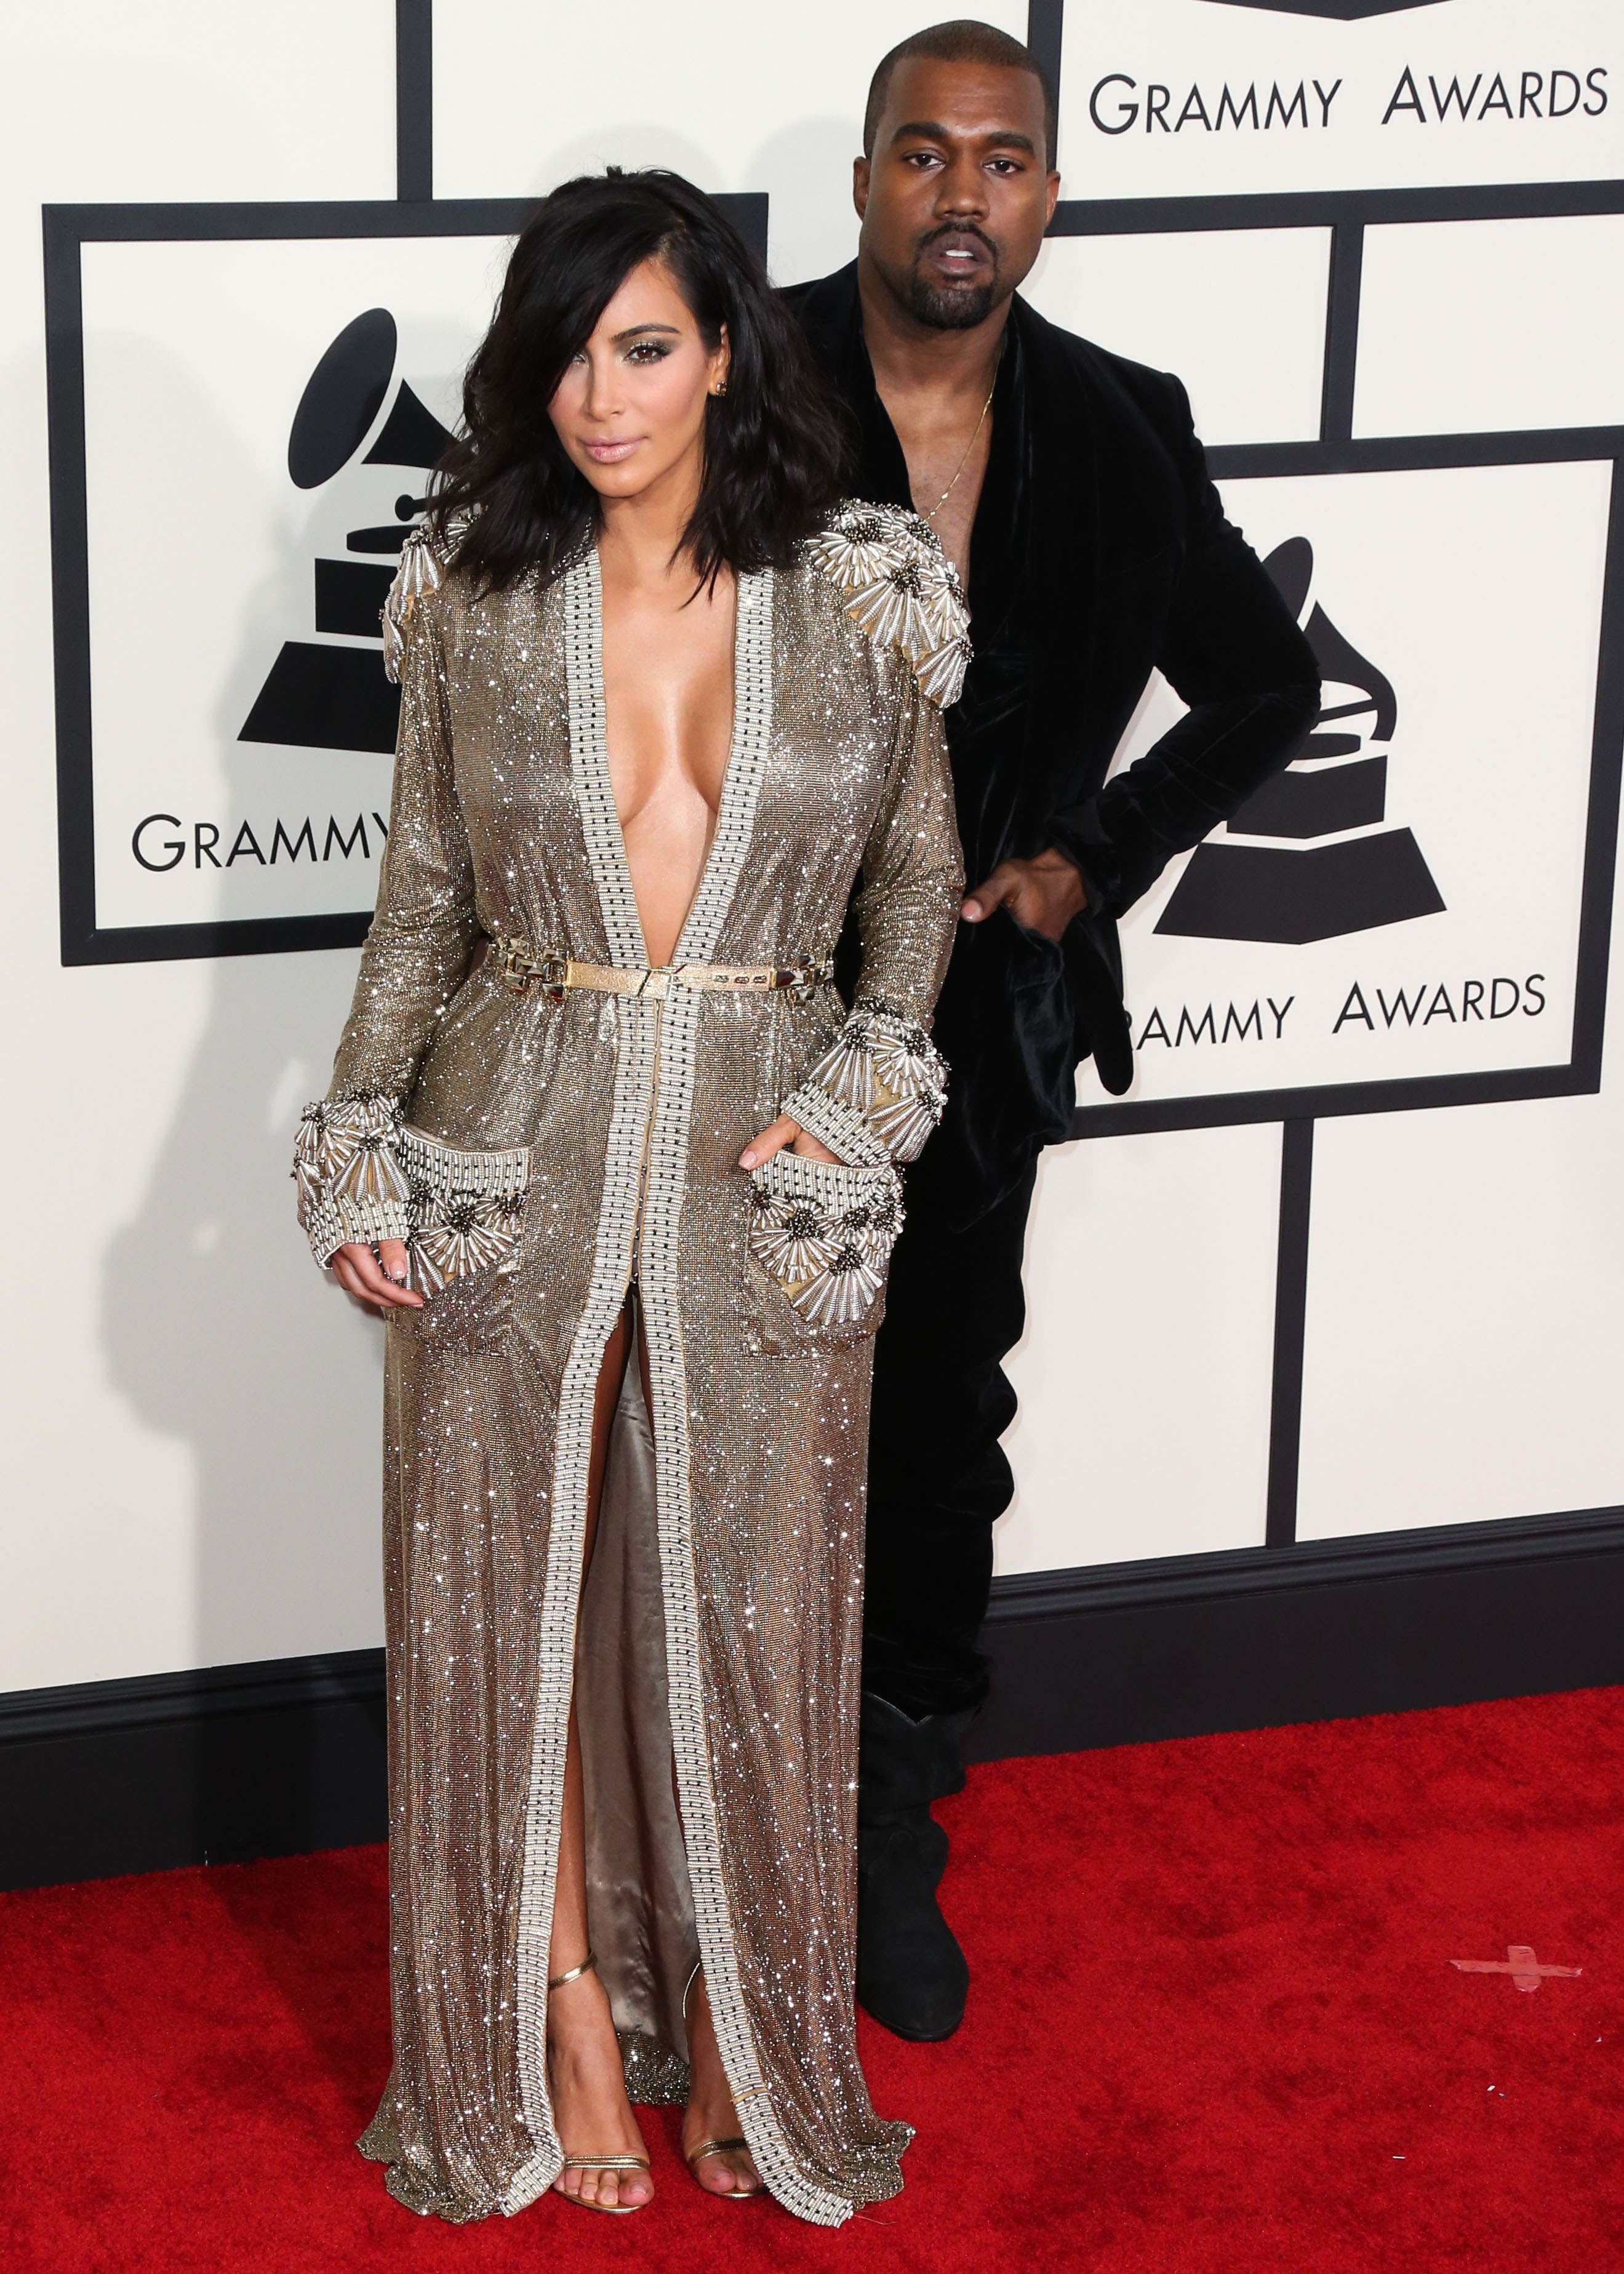 Kim Kardashian and Kanye West arrive at the 57th Annual Grammy Awards, held at Staples Center on February 8, 2015 in Los Angeles, California. <P> Pictured: Kim Kardashian and Kanye West <B>Ref: SPL947621  080215  </B><BR/> Picture by: Xavier Collin/Image Press/Splash<BR/> </P><P> <B>Splash News and Pictures</B><BR/> Los Angeles:310-821-2666<BR/> New York:212-619-2666<BR/> London:870-934-2666<BR/> <span id=